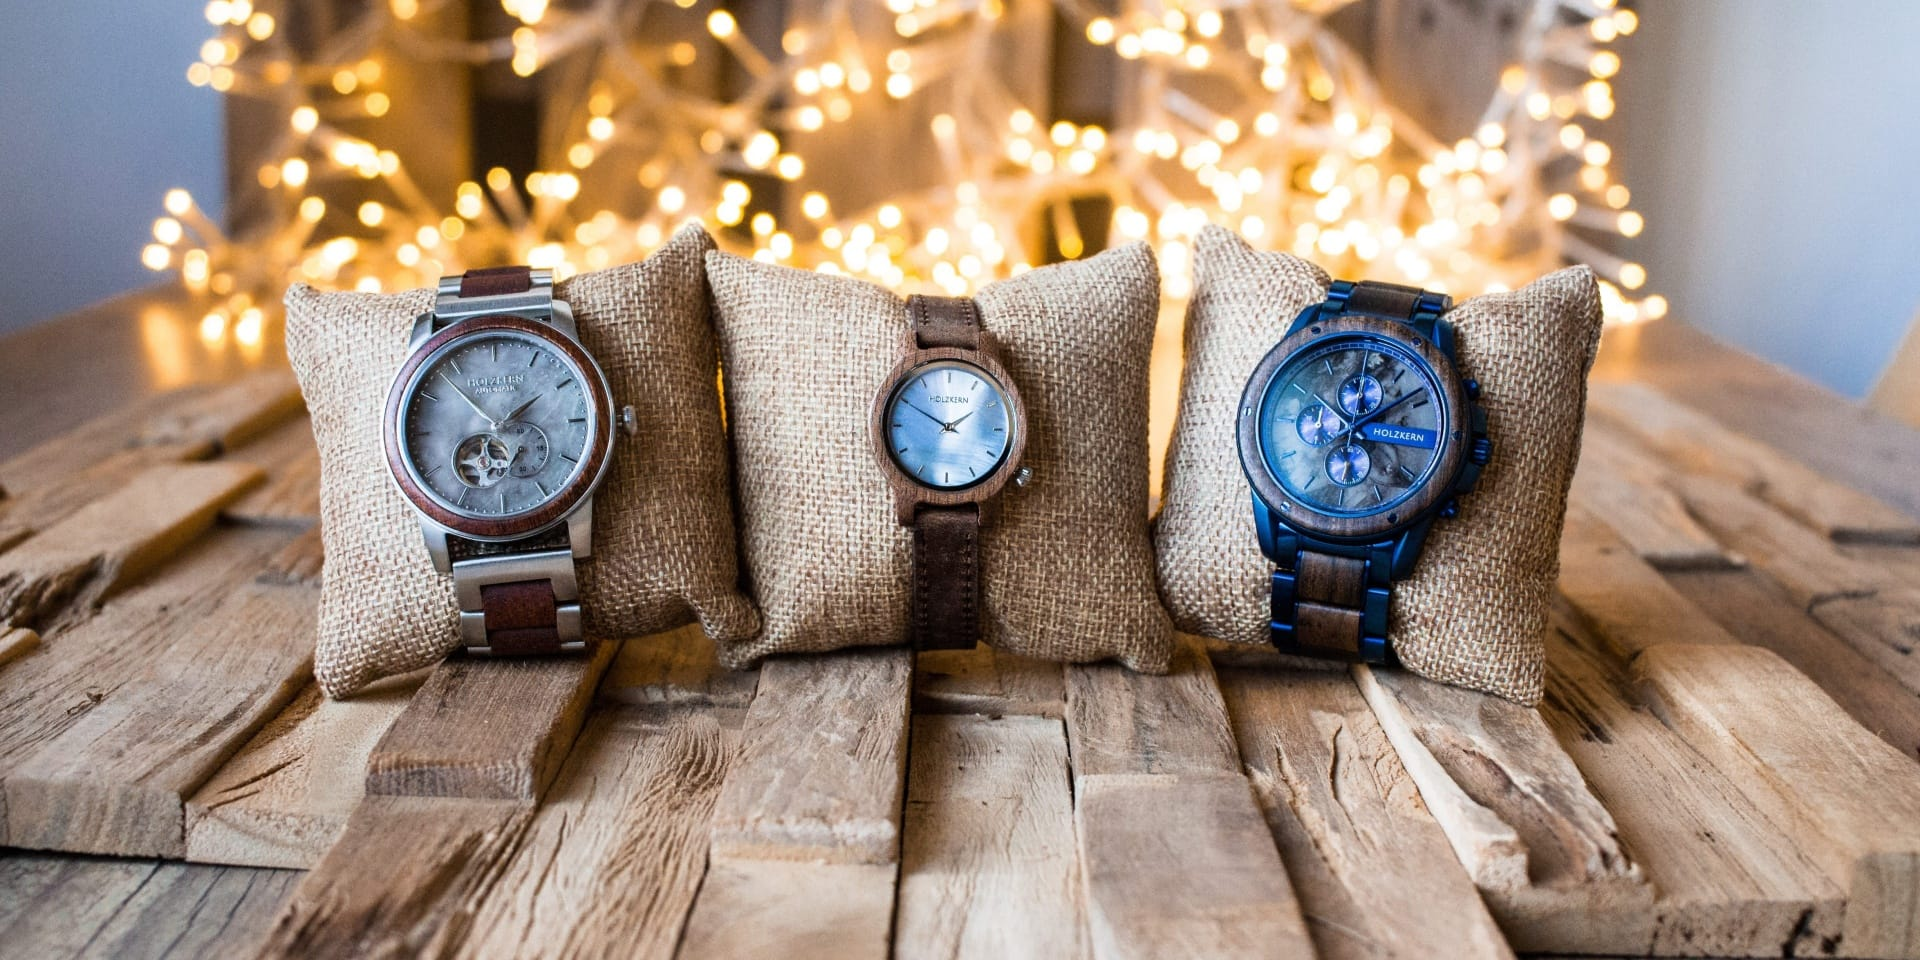 Why Holzkern watches are the ideal gifts